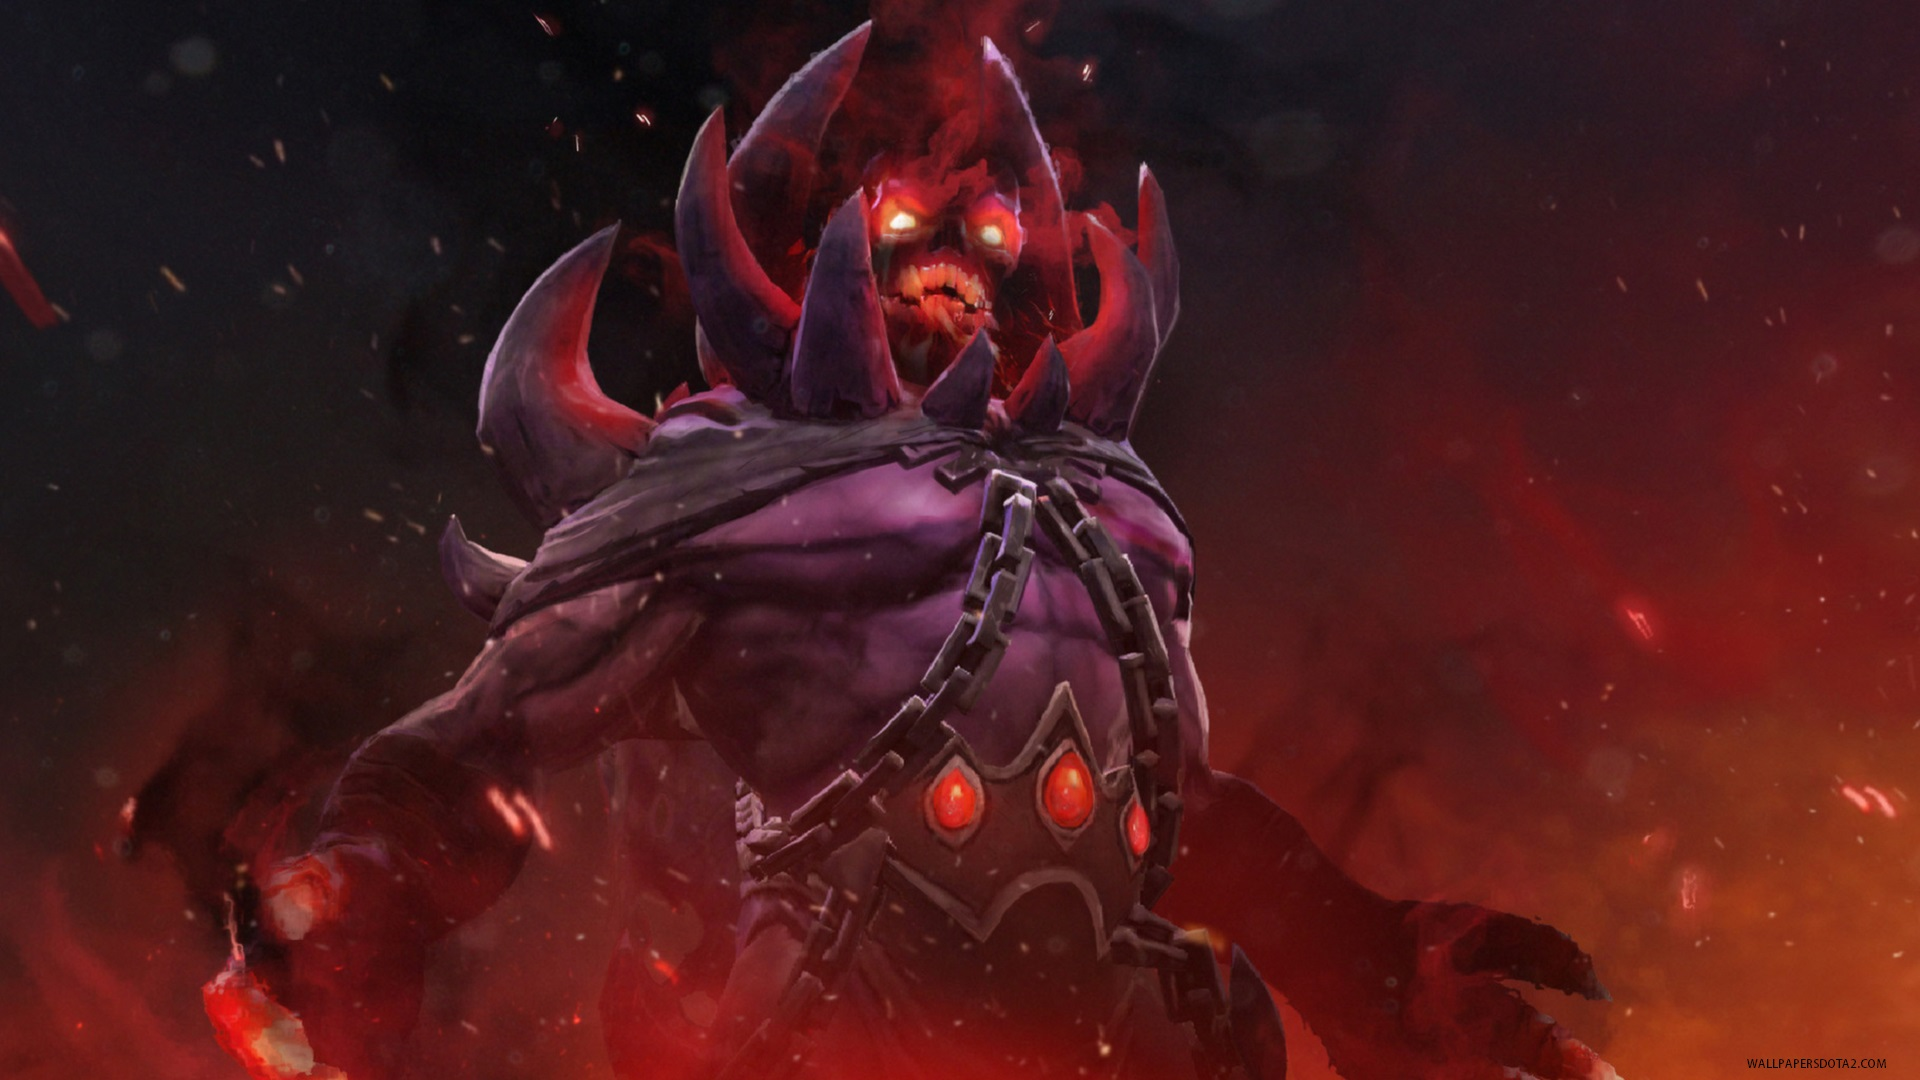 Shadow Demon wallpaper computer desktop Dota 2 online wallpapers